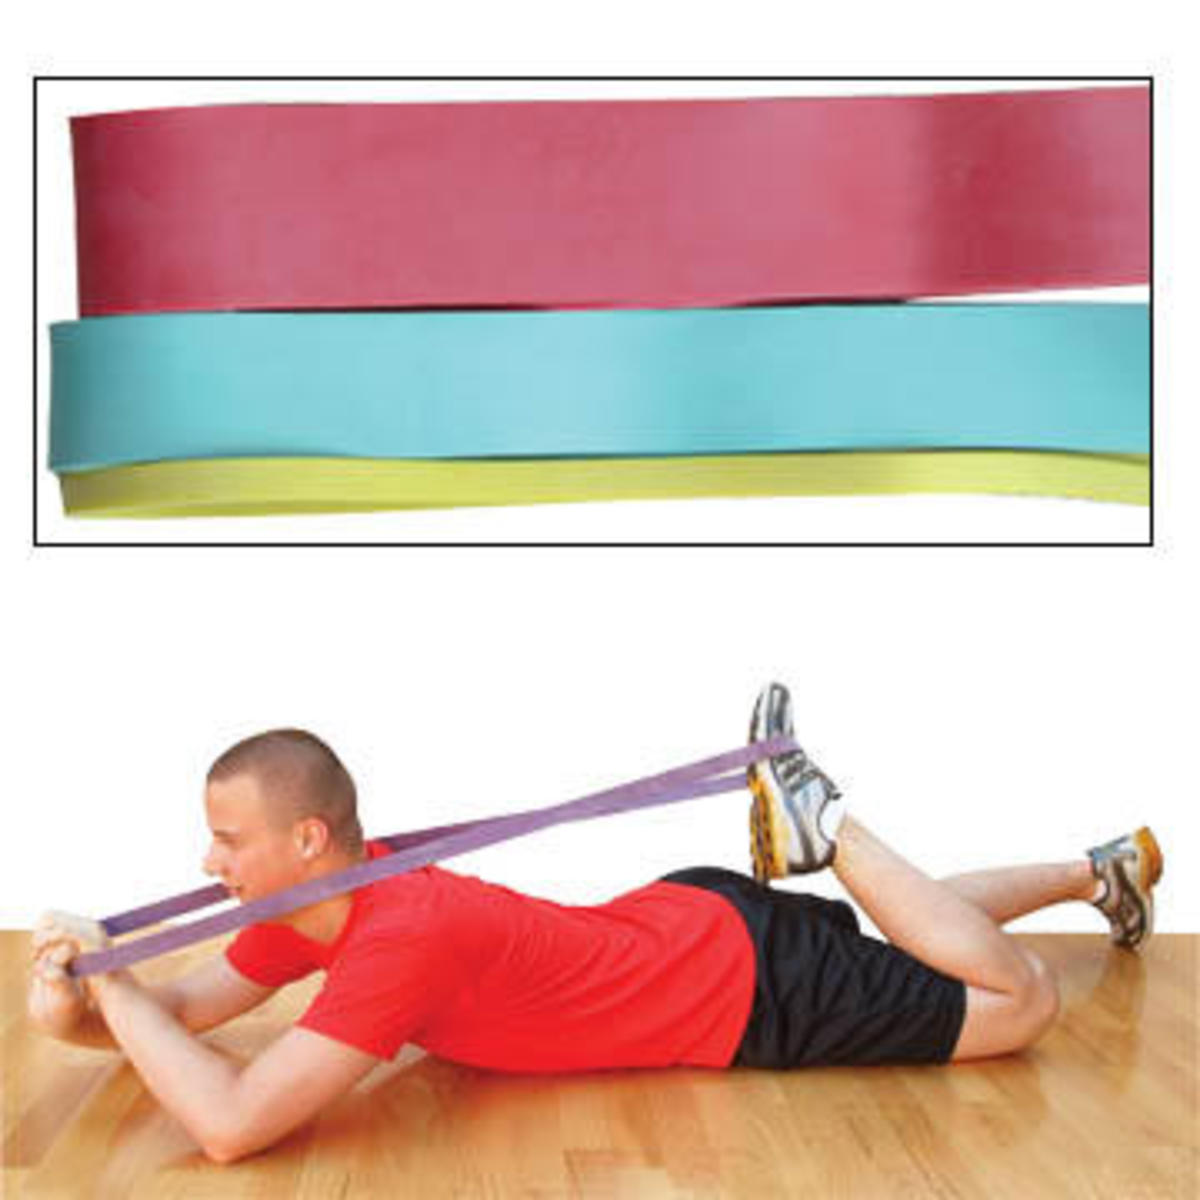 Resistance Band Exercise Posters | Buy Online